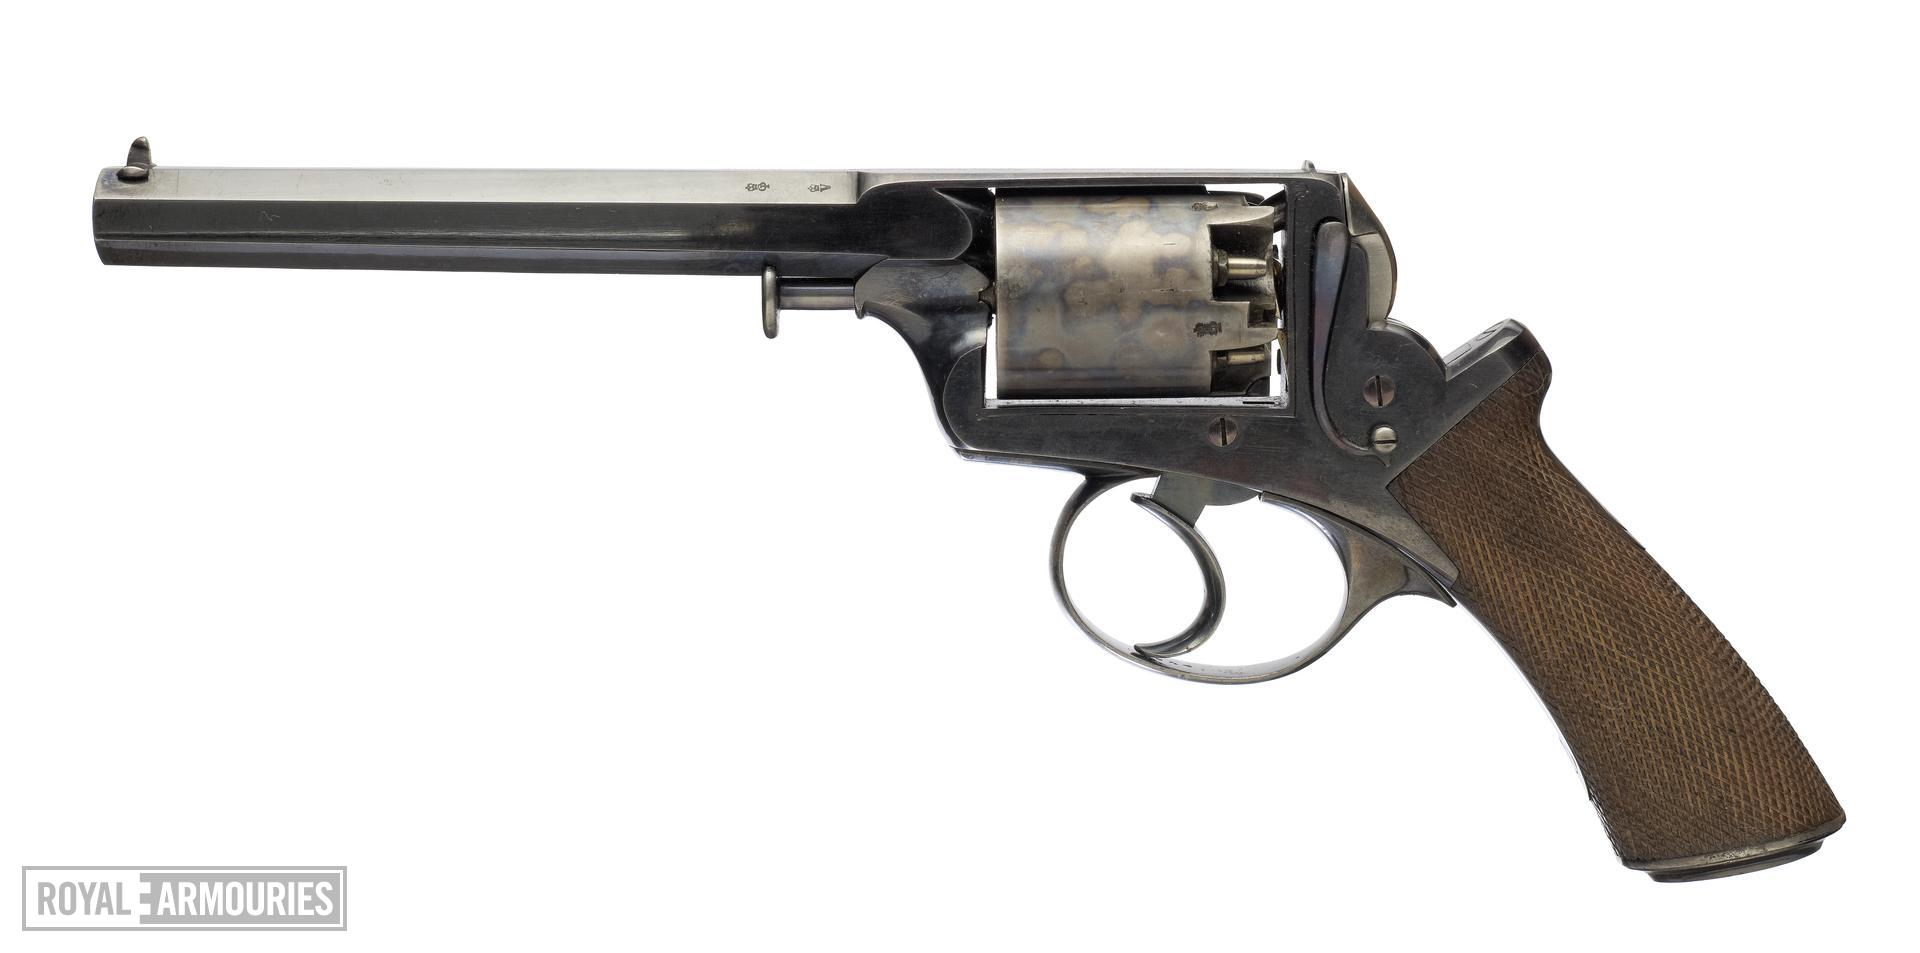 Percussion five-shot revolver - Adams Model 1851